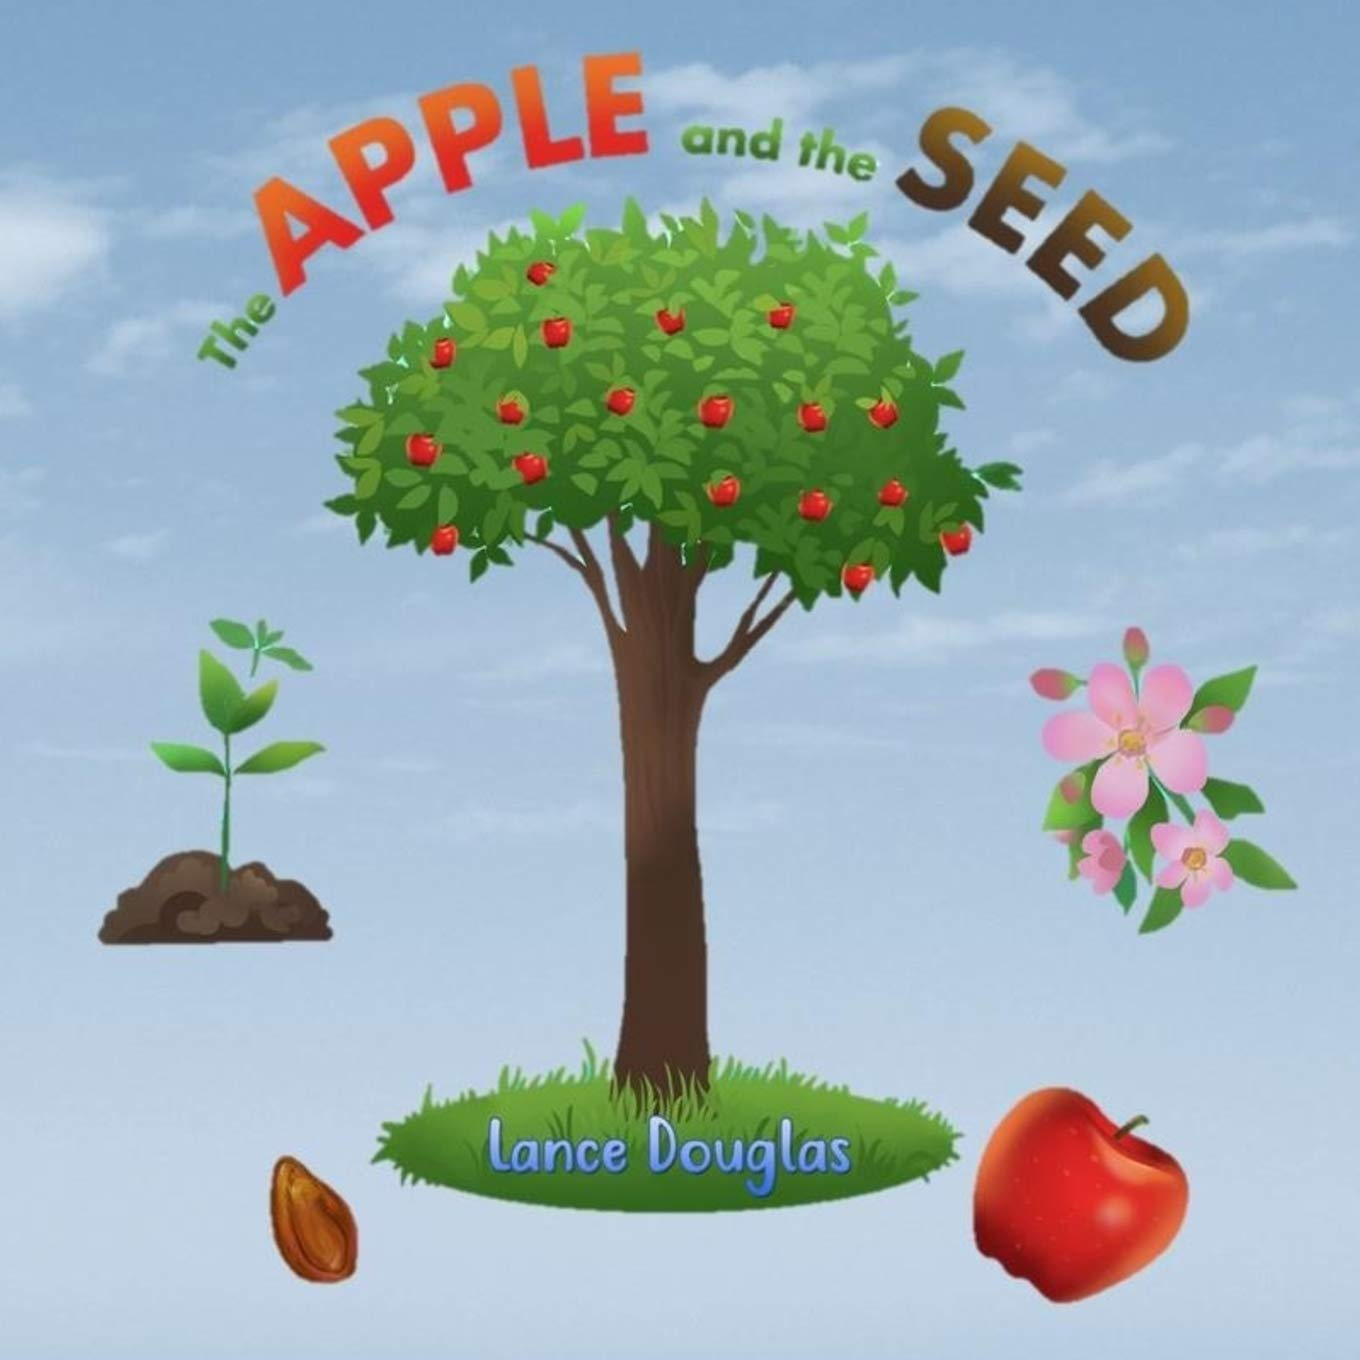 The Apple and the Seed: A Story of the Plant Life Cycle and